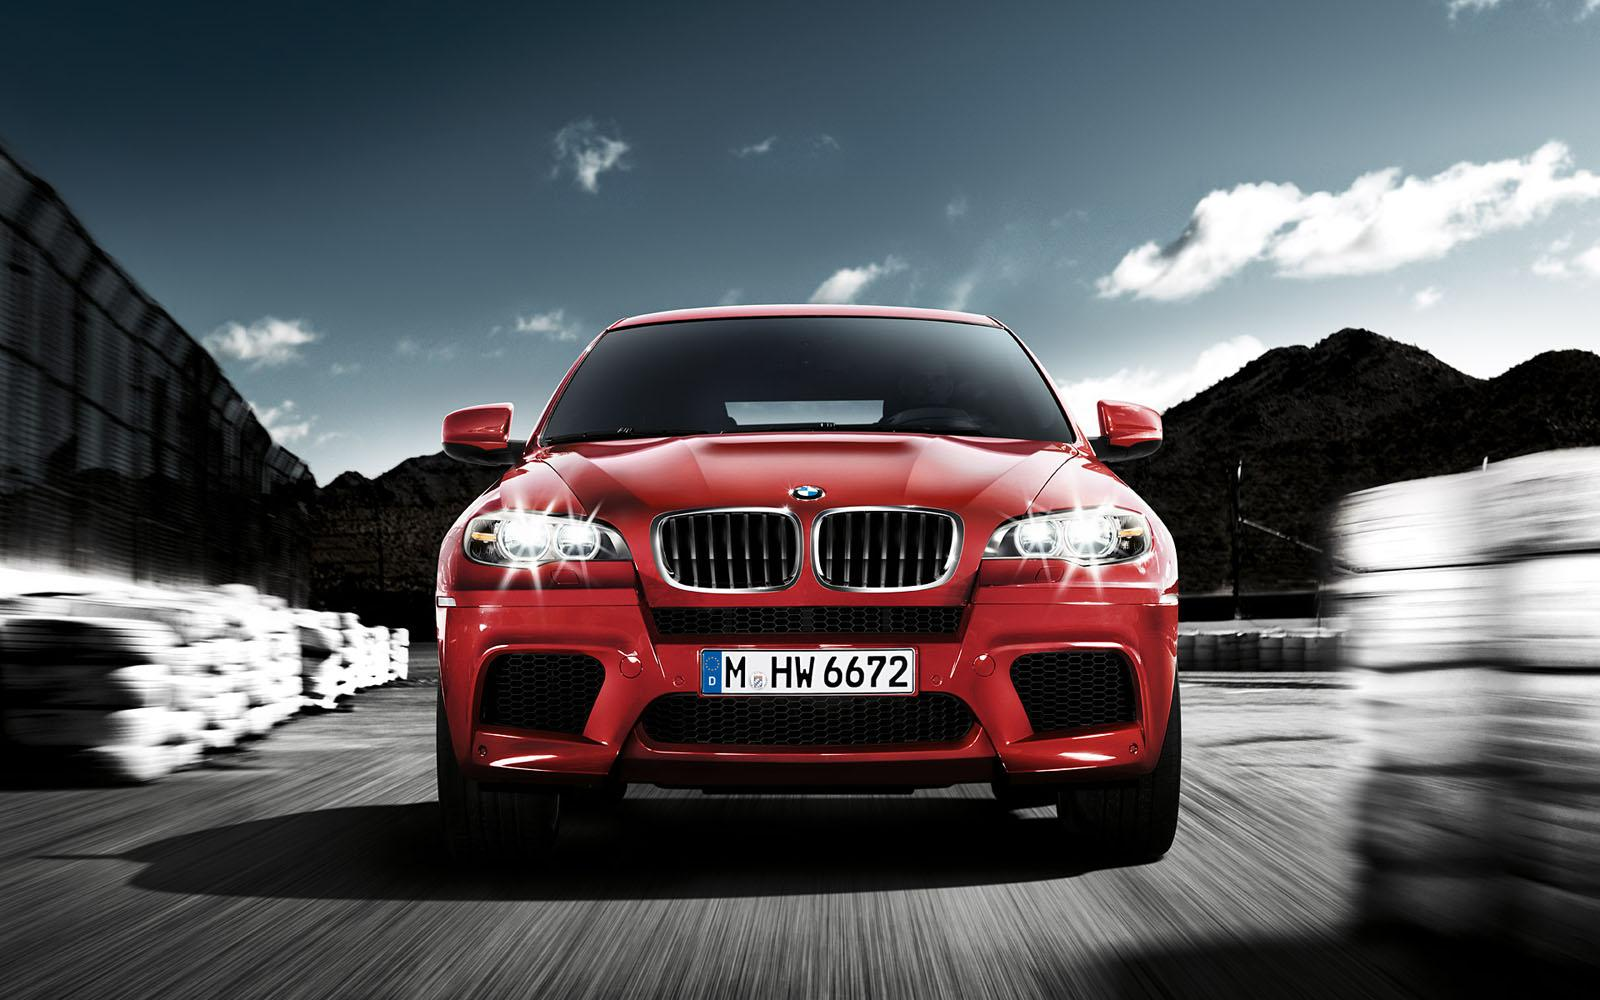 2013 Bmw X6 M Gallery 502320 Top Speed